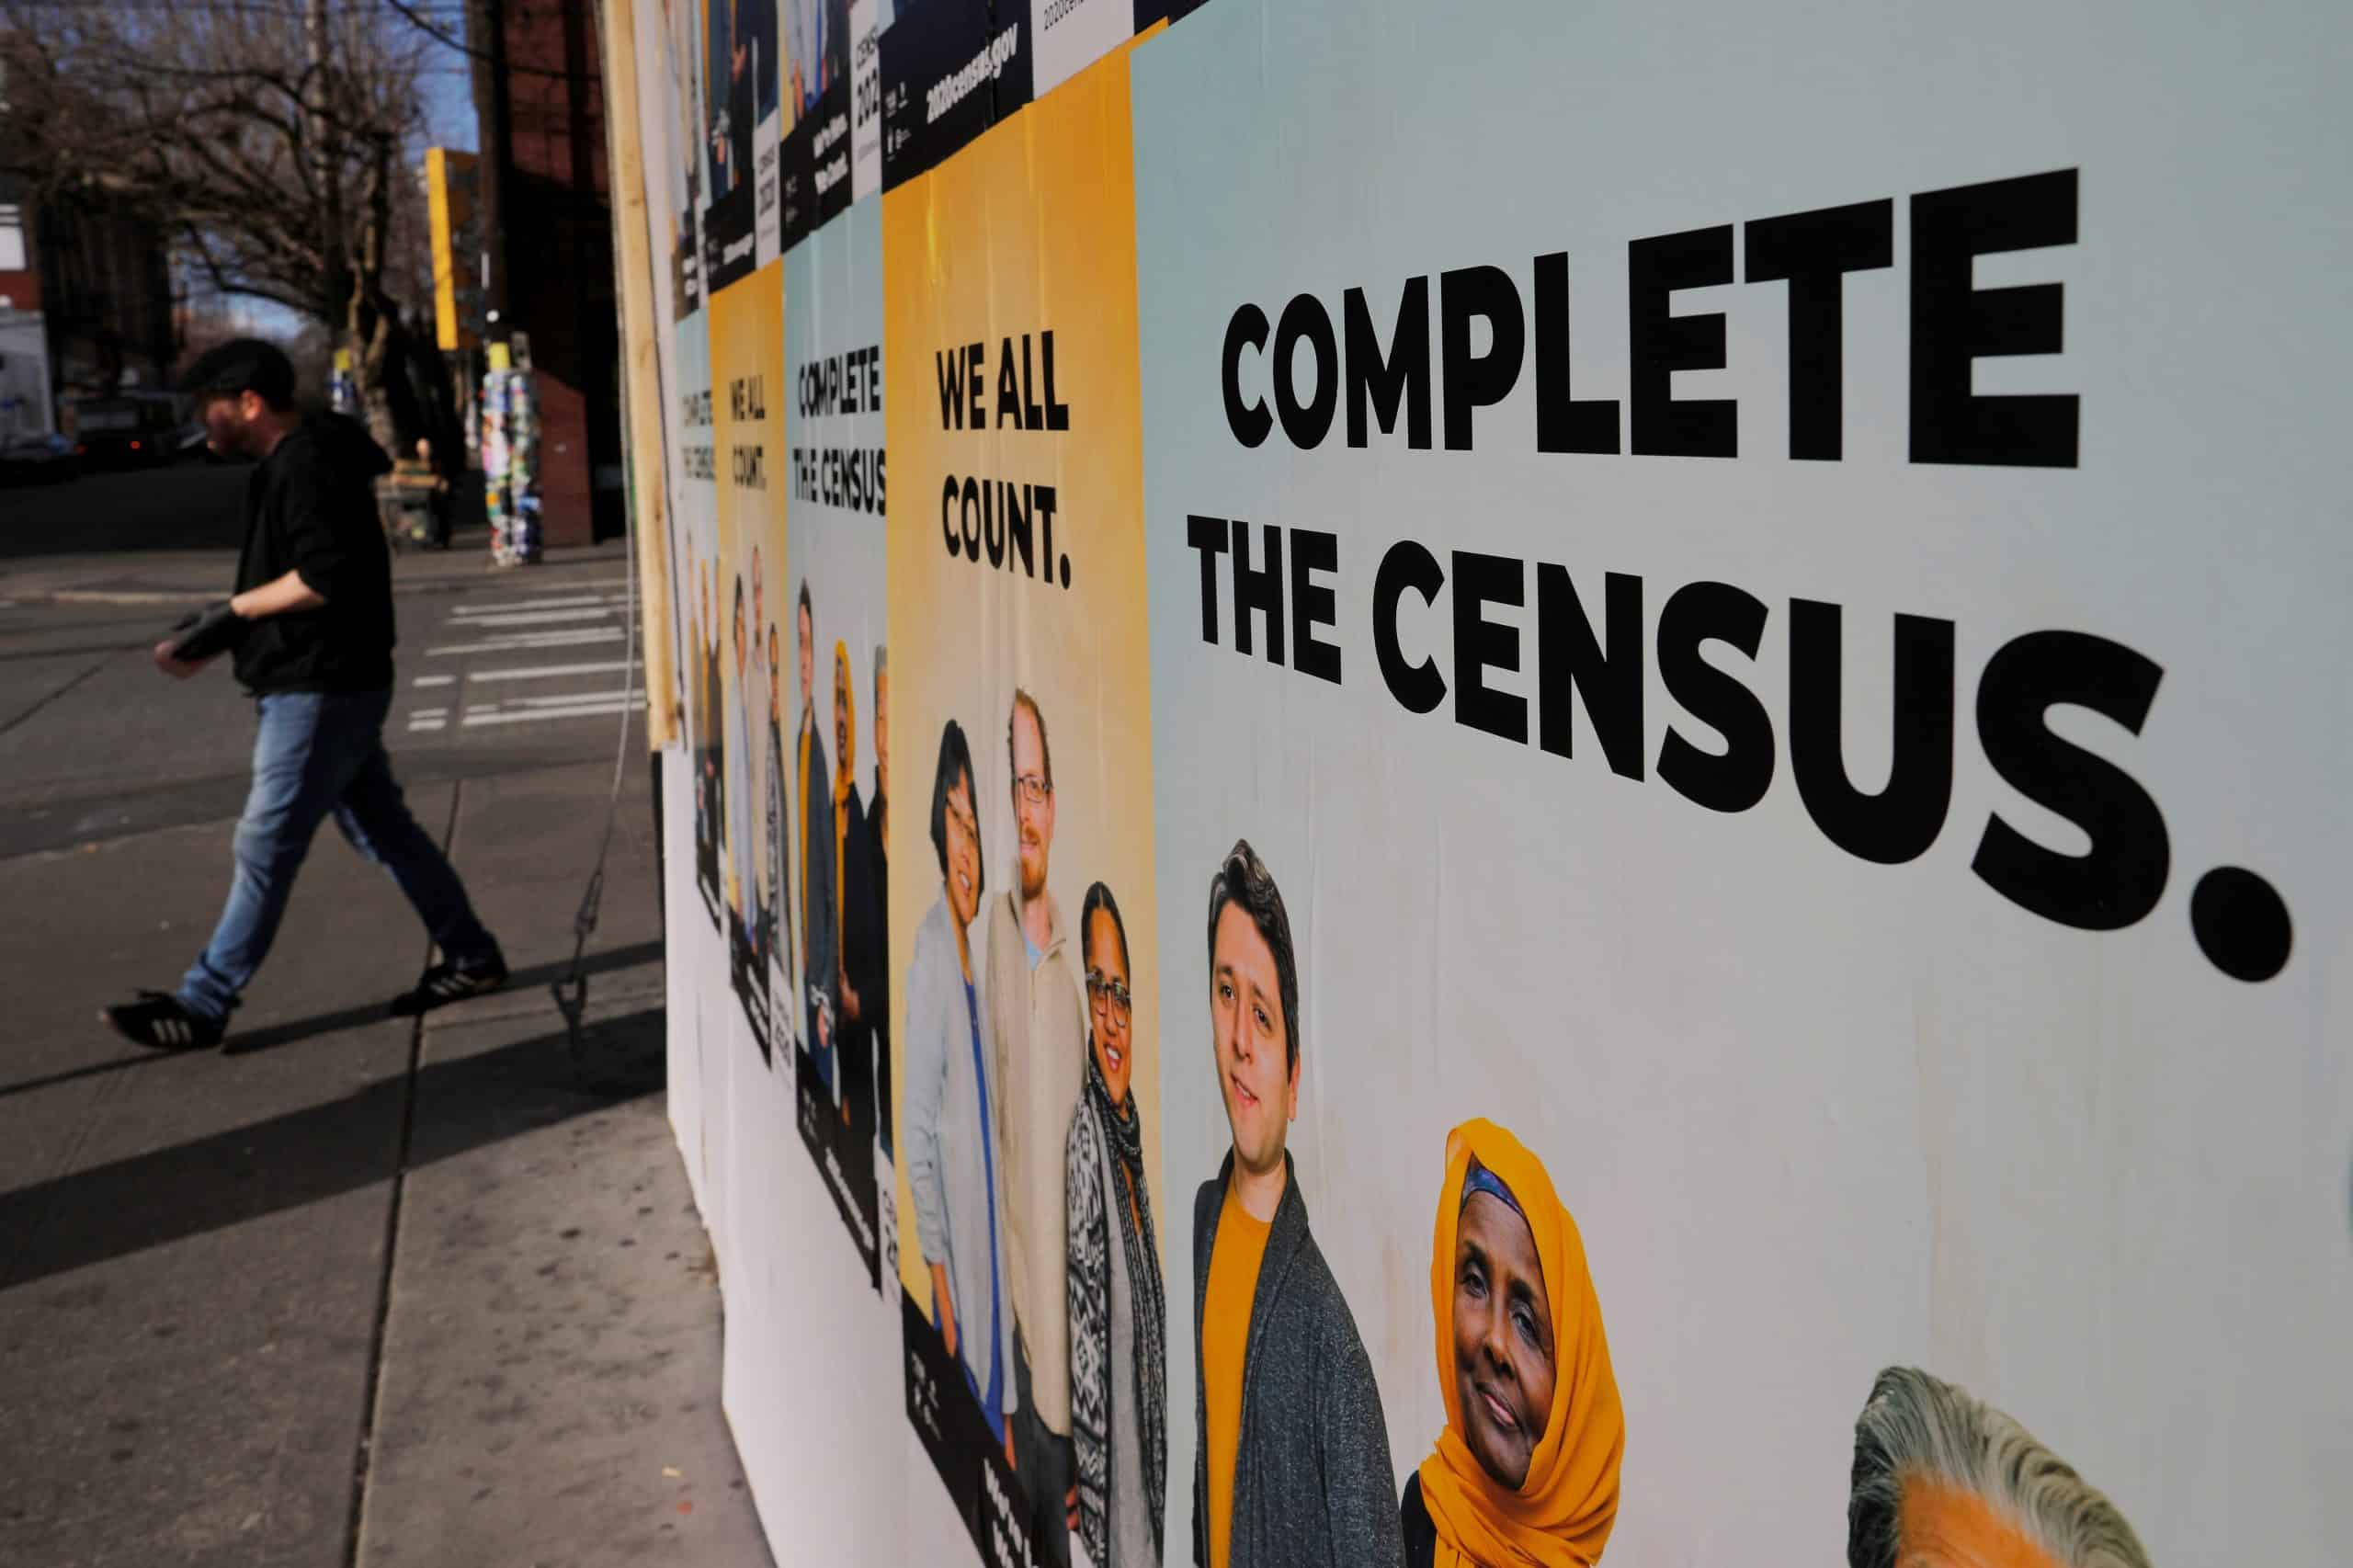 Texas Catholics encourage census participation amid pandemic